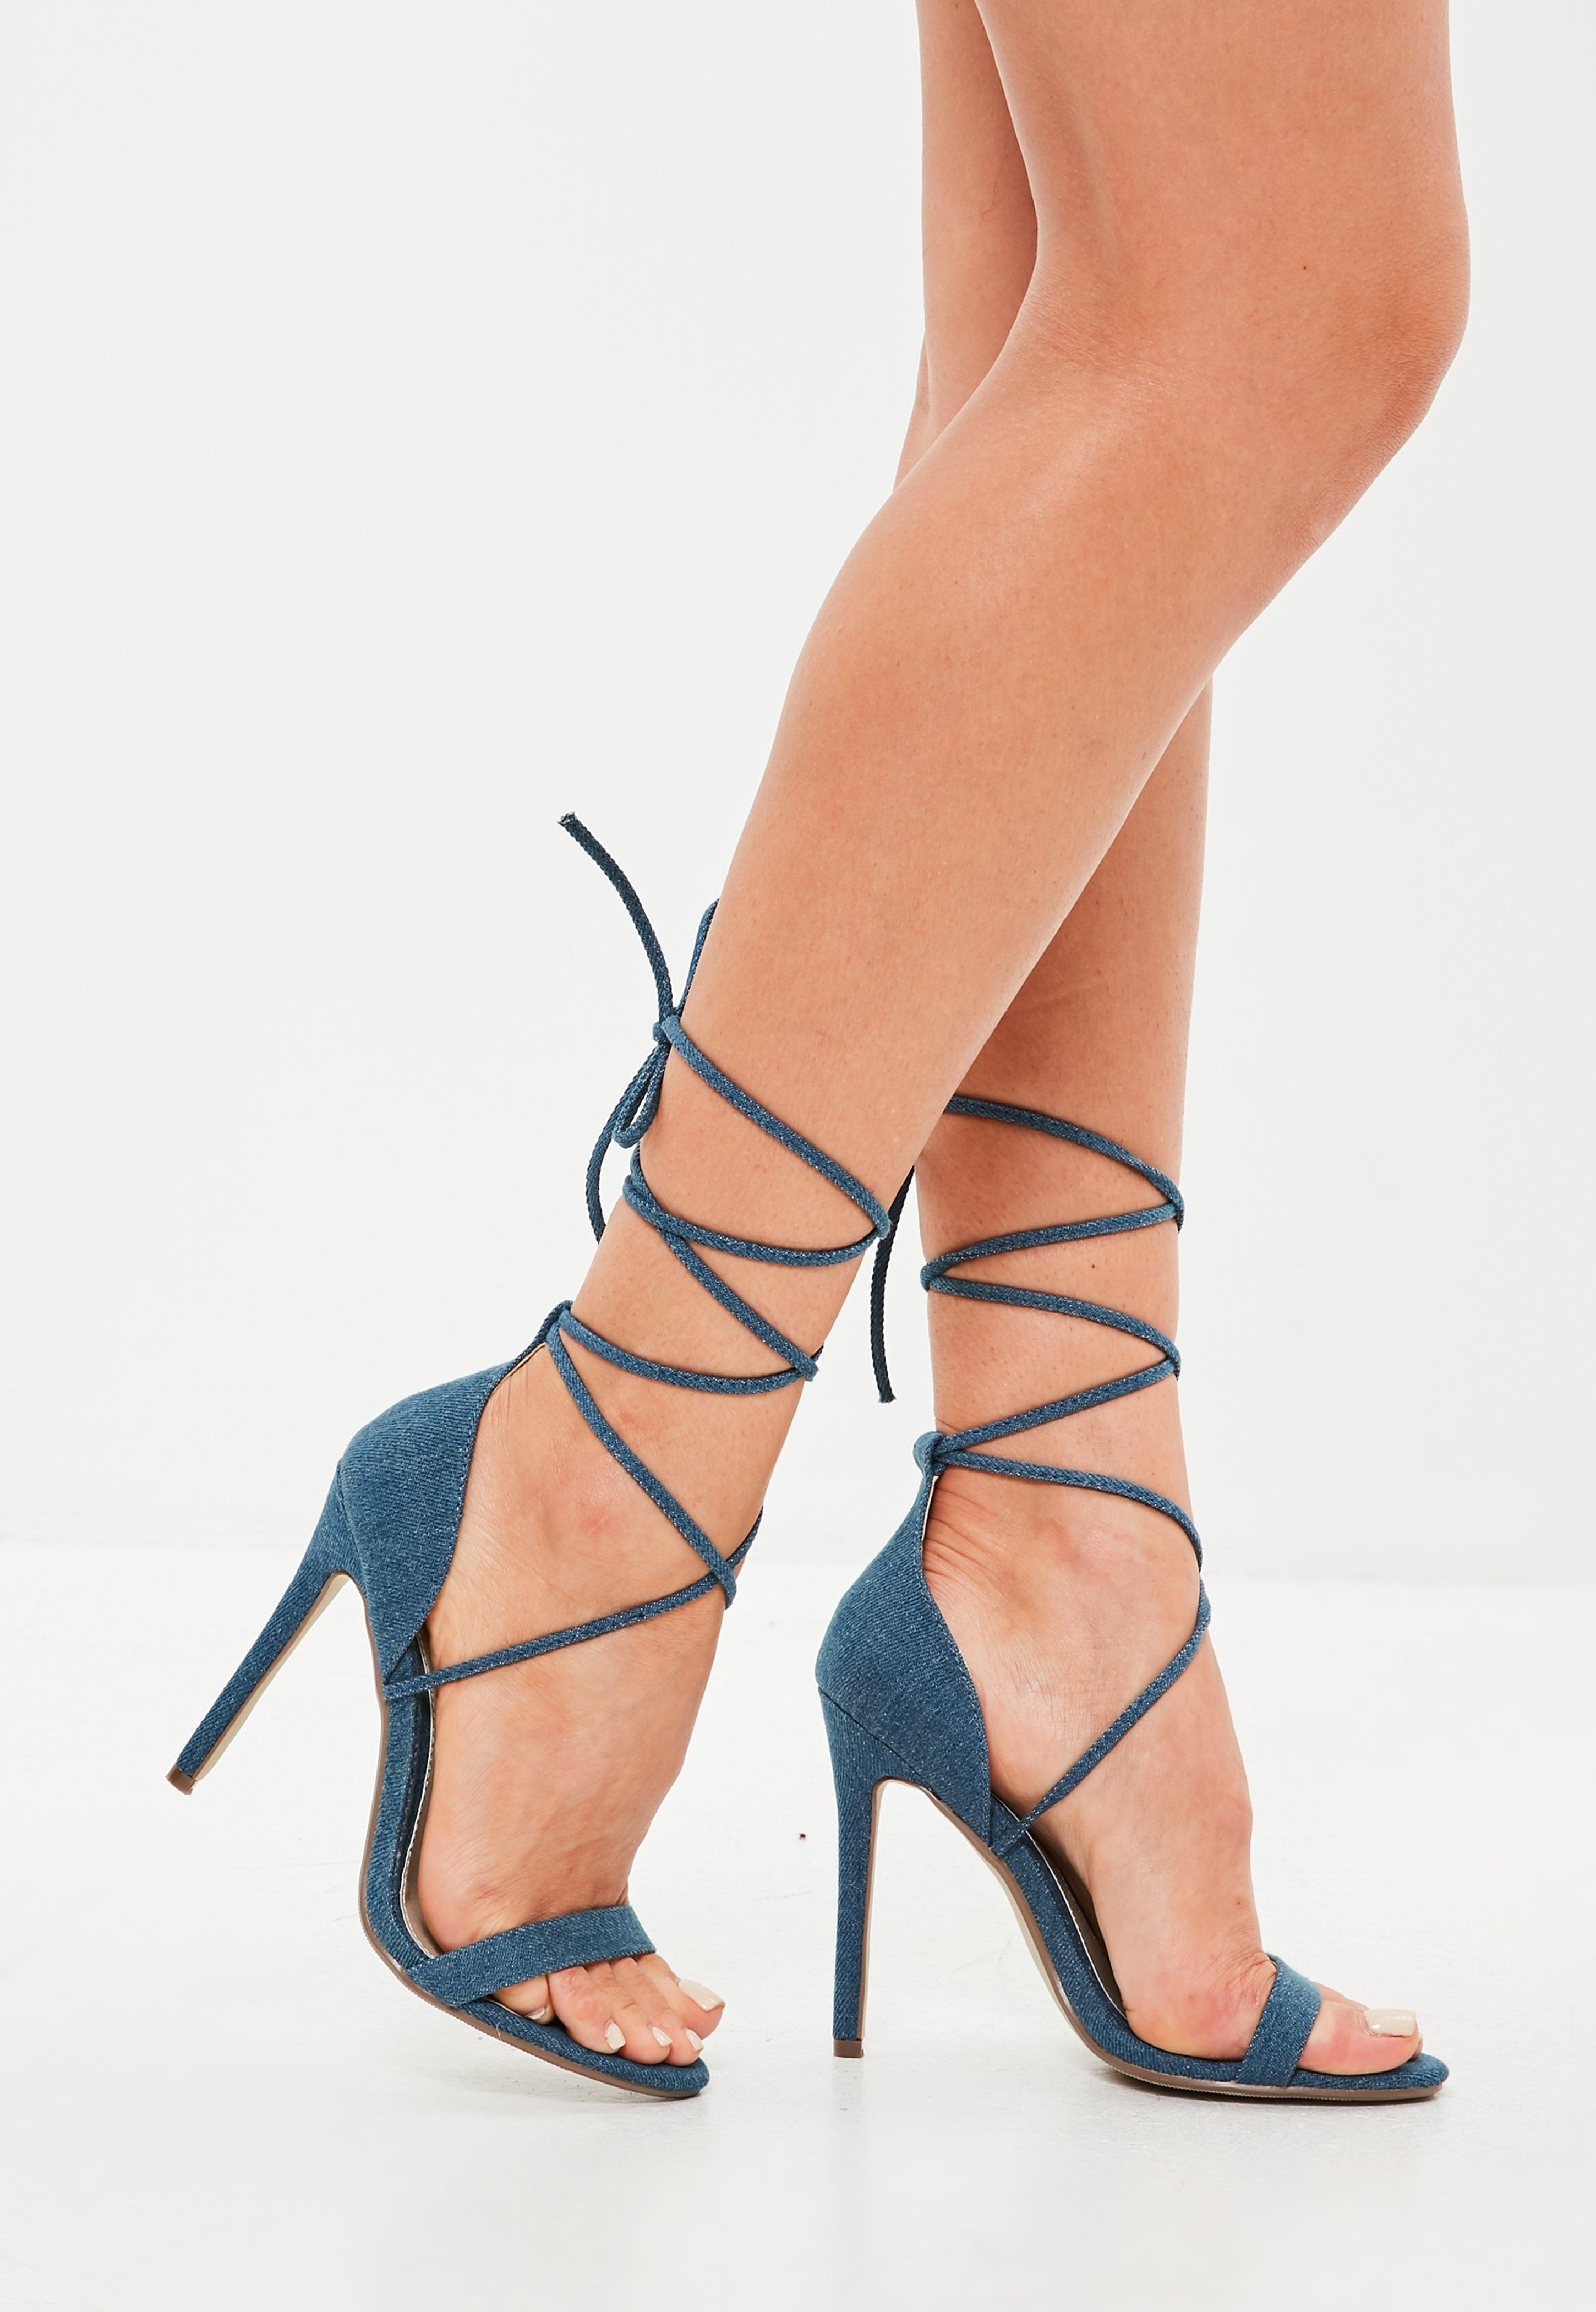 d2a72dae5e6f Lyst - Missguided Blue Denim Lace Up Barely There Heeled Sandals in Blue